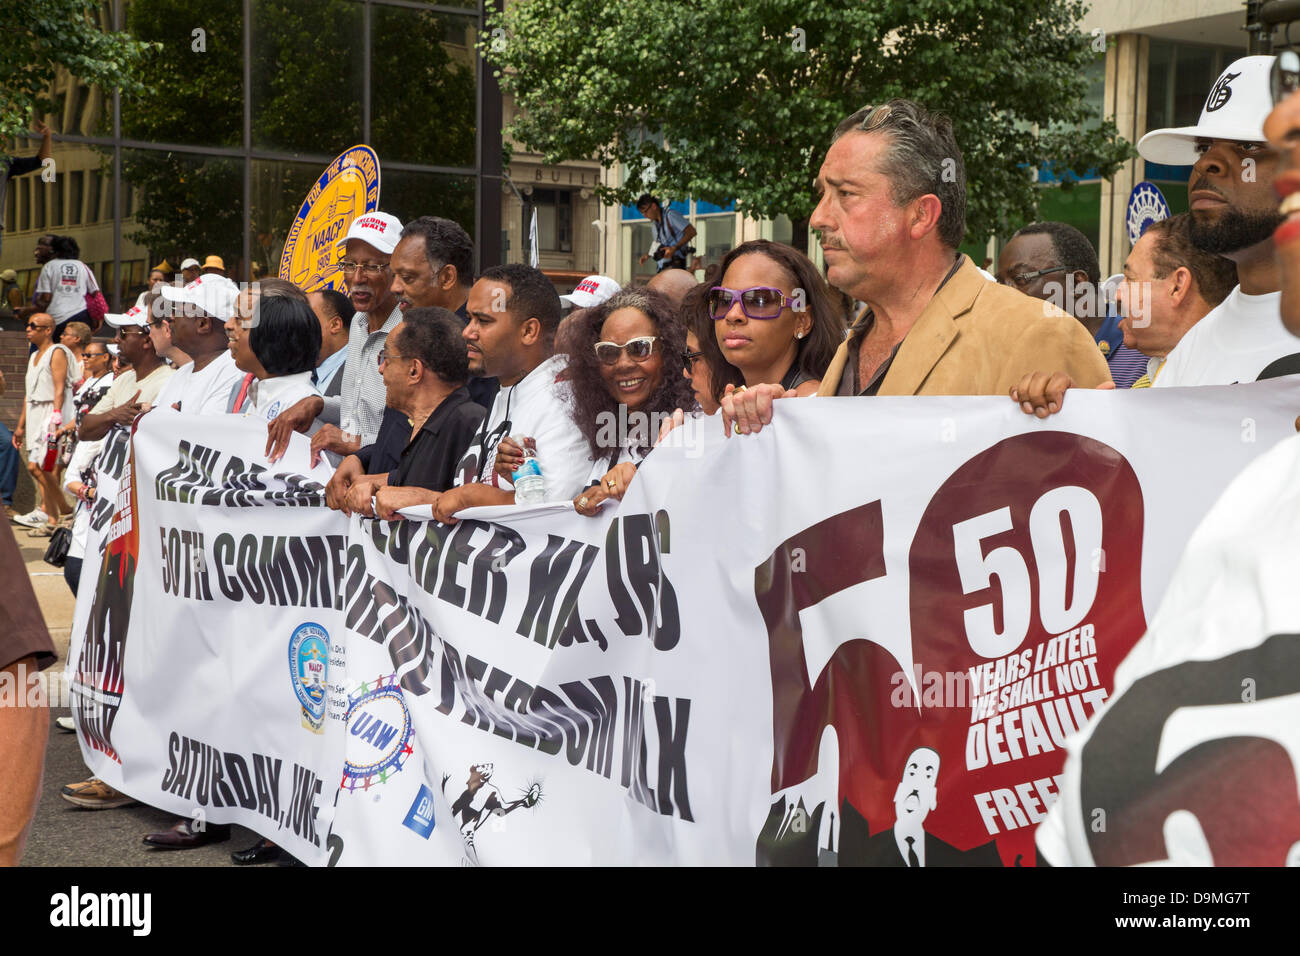 Detroit, Michigan - June 22, 2013 - Thousands of civil rights, labor, and community activists commemorate the 50th - Stock Image